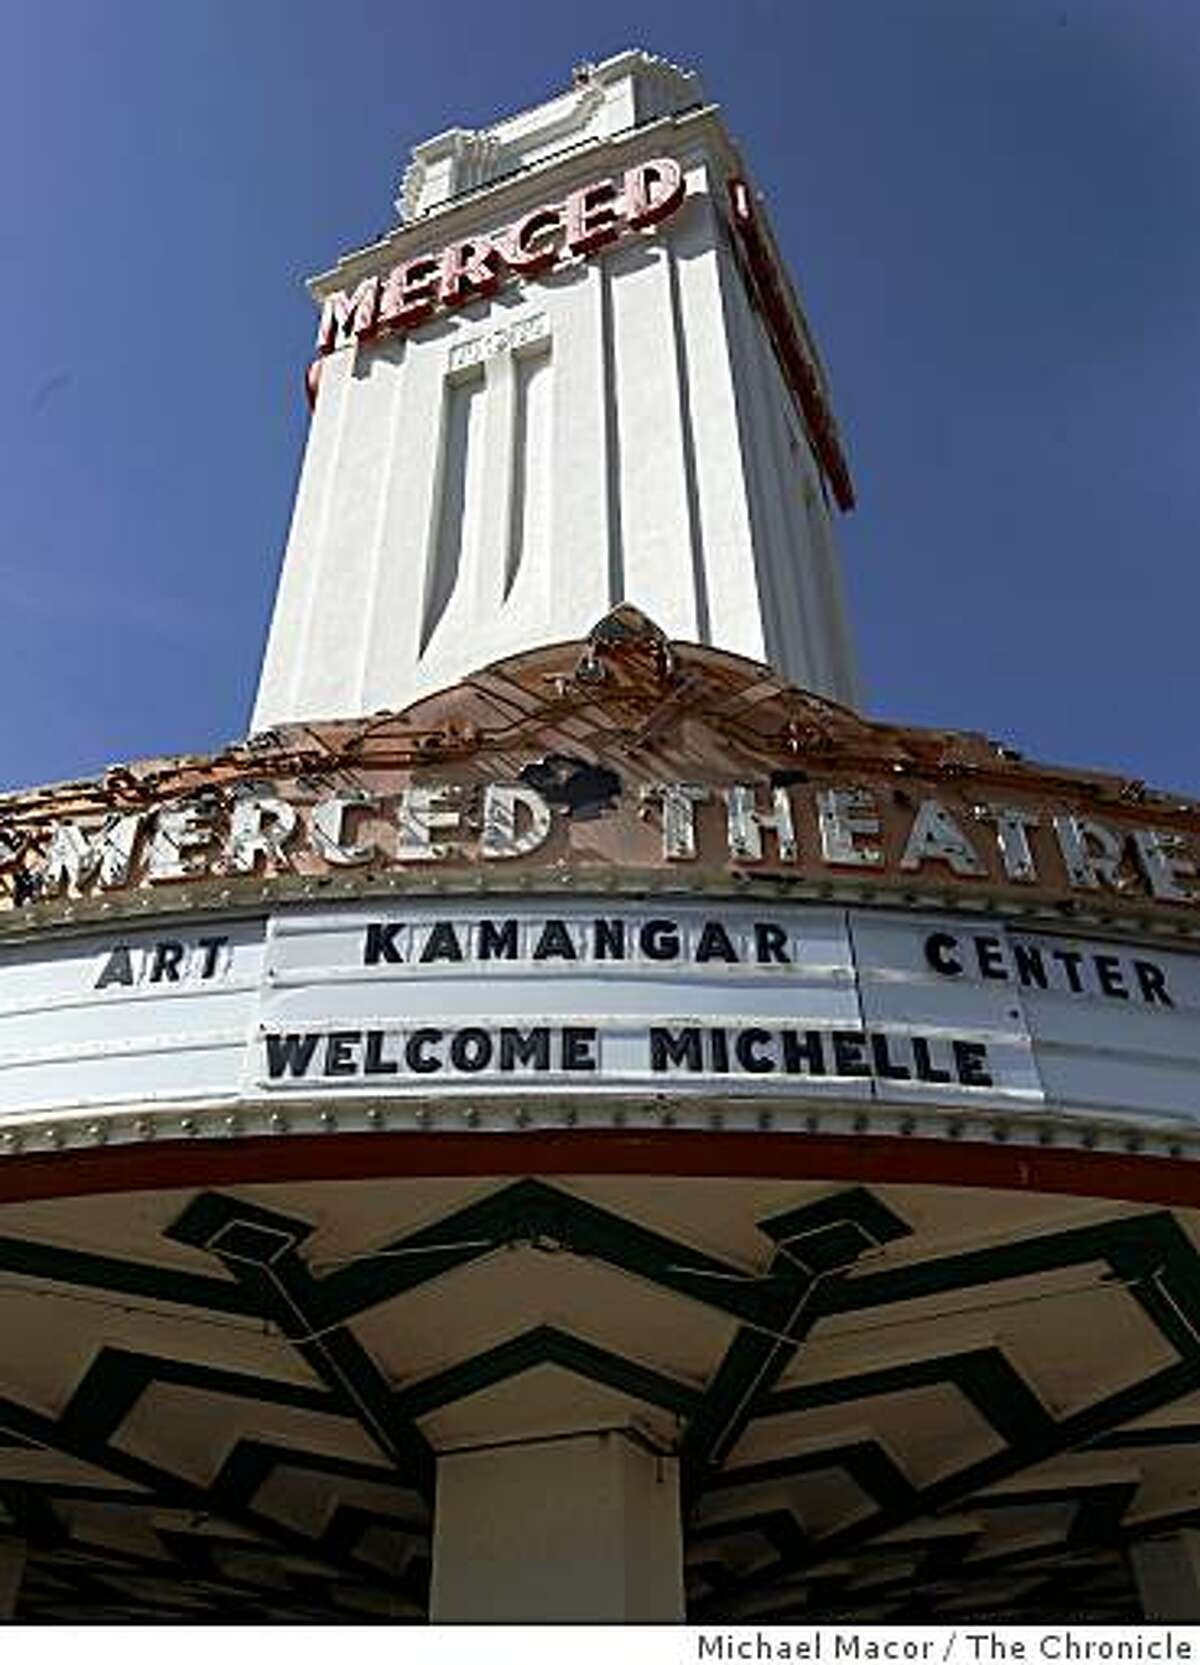 The marquee of a downtown theater in Merced, Calif., on Thursday, May 14, 2009, displays a welcome for the impending arrival of First Lady Michelle Obama, who is delivering the commencement speech for the first full graduating class of UC Merced this Saturday.